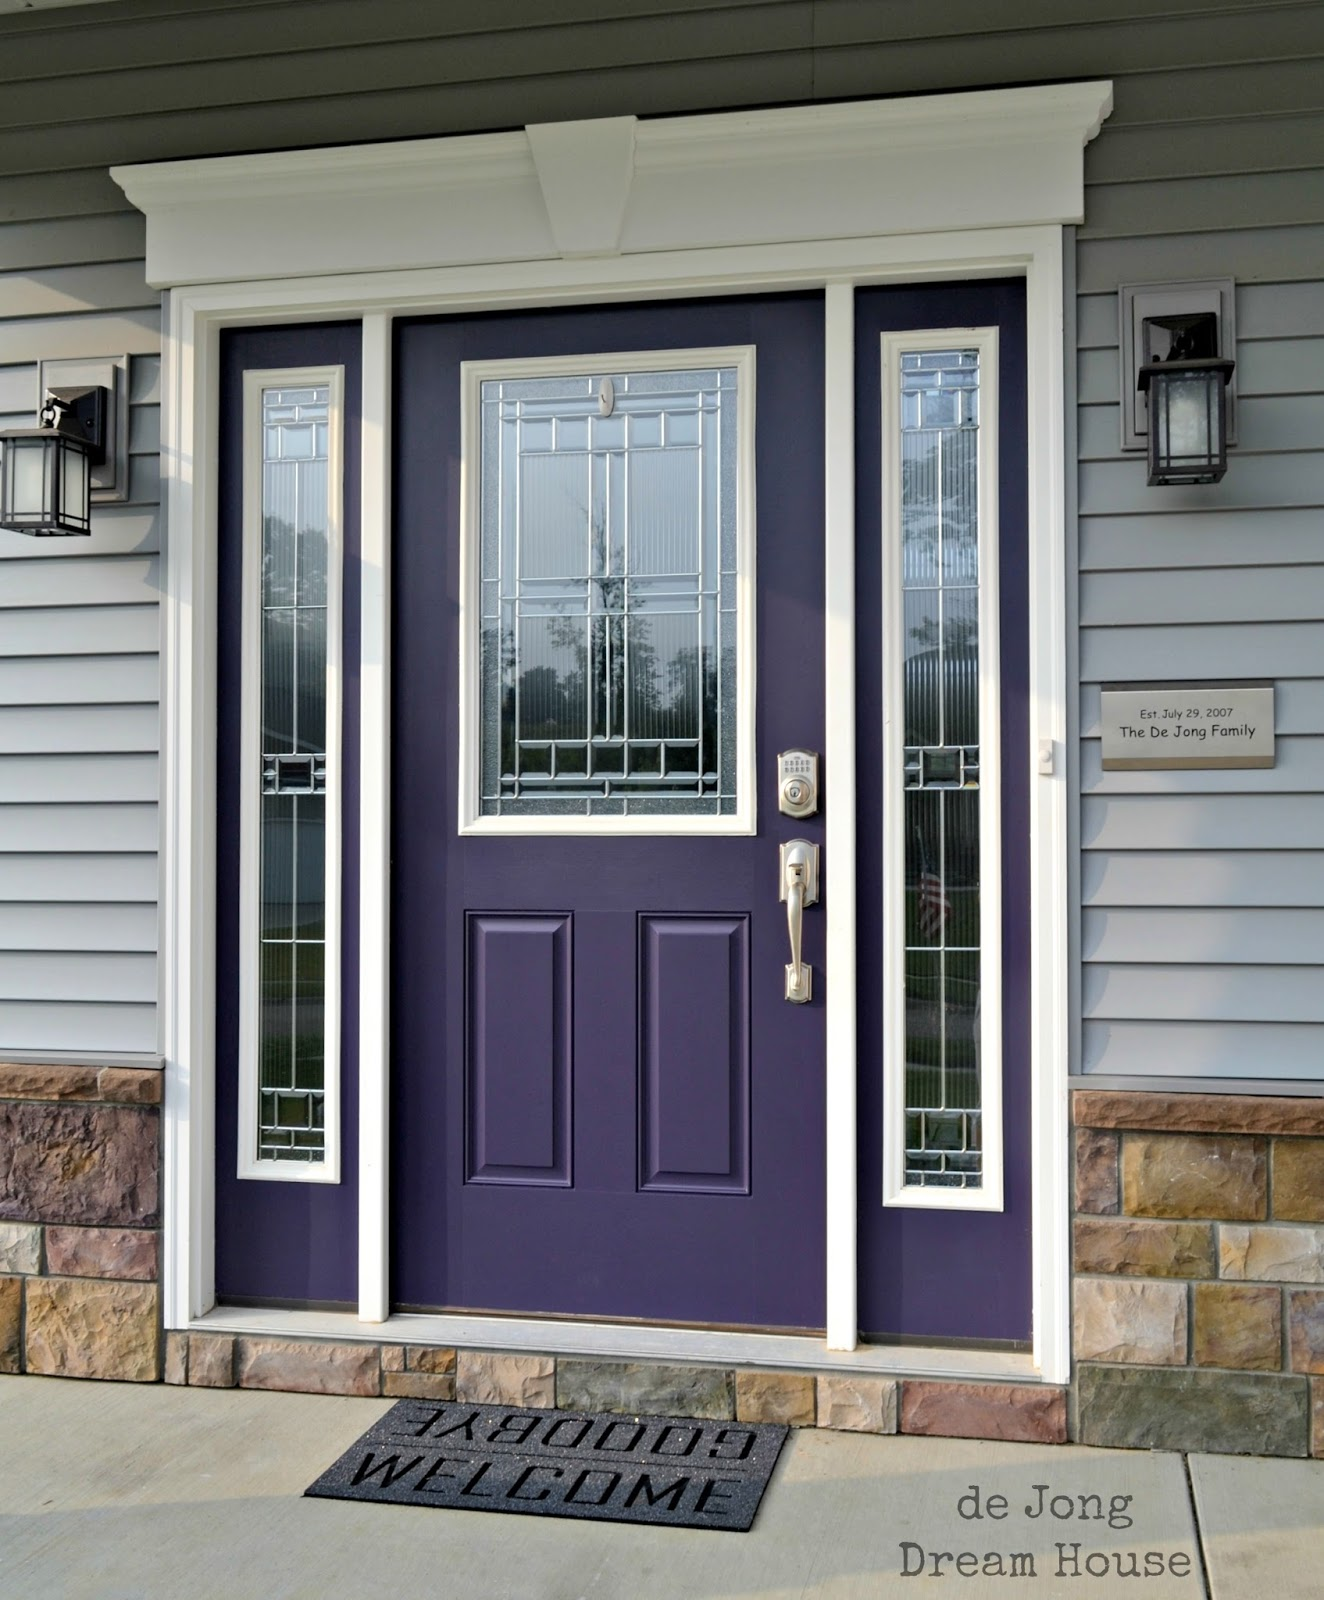 De jong dream house our purple door - What color door goes with gray house ...